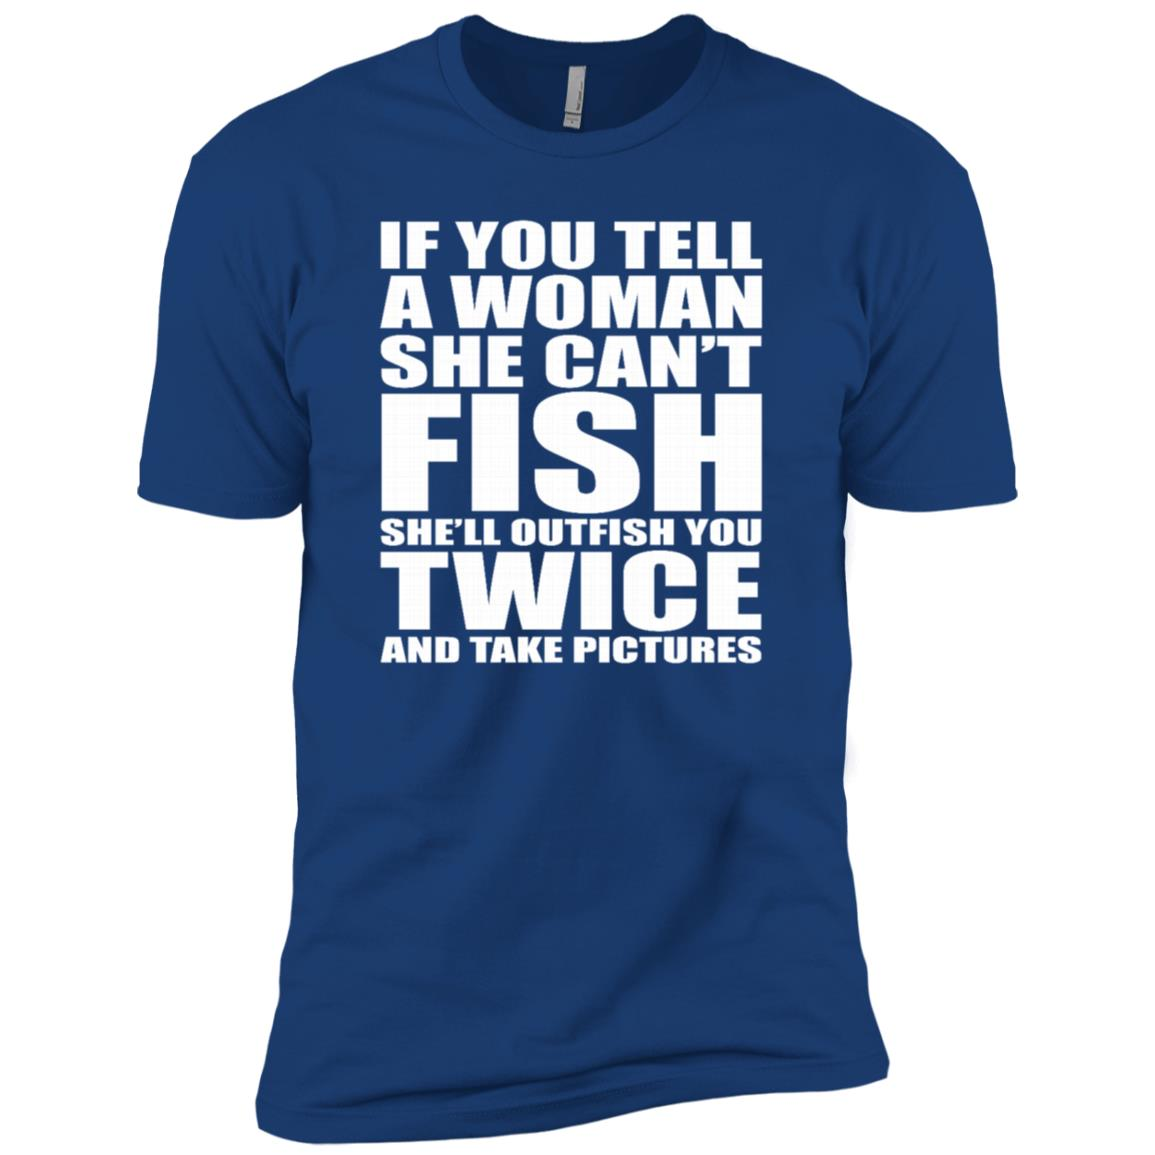 She'll Outfish You Twice & Take Pictures Funny Fish Ls Men Short Sleeve T-Shirt